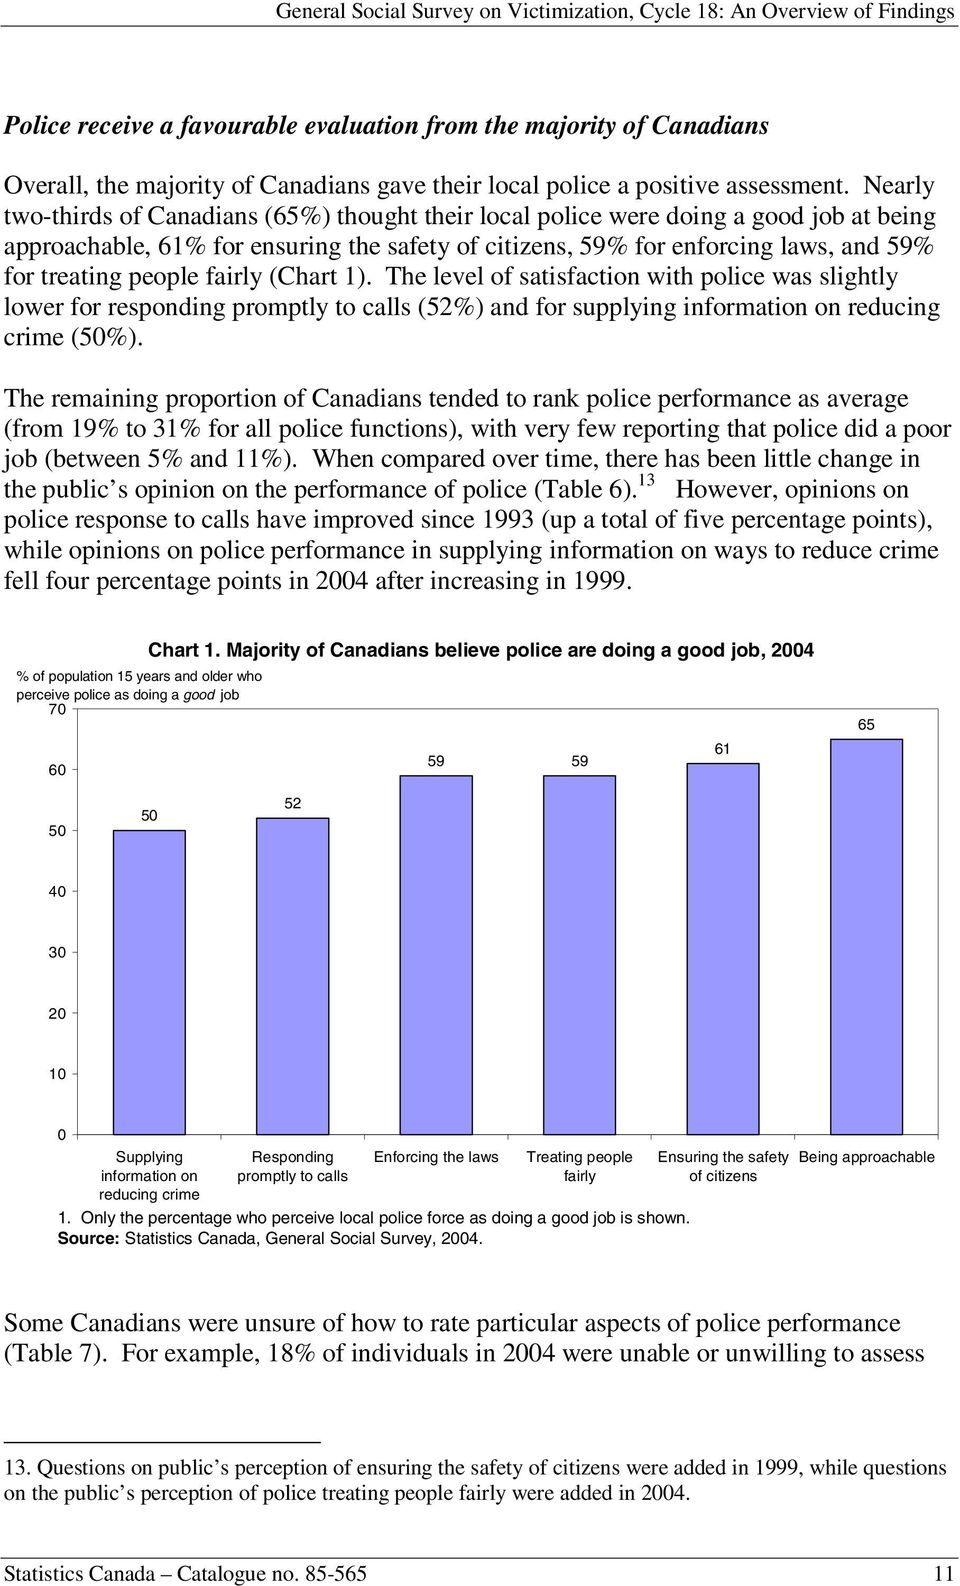 people fairly (Chart 1). The level of satisfaction with police was slightly lower for responding promptly to calls (52%) and for supplying information on reducing crime (50%).